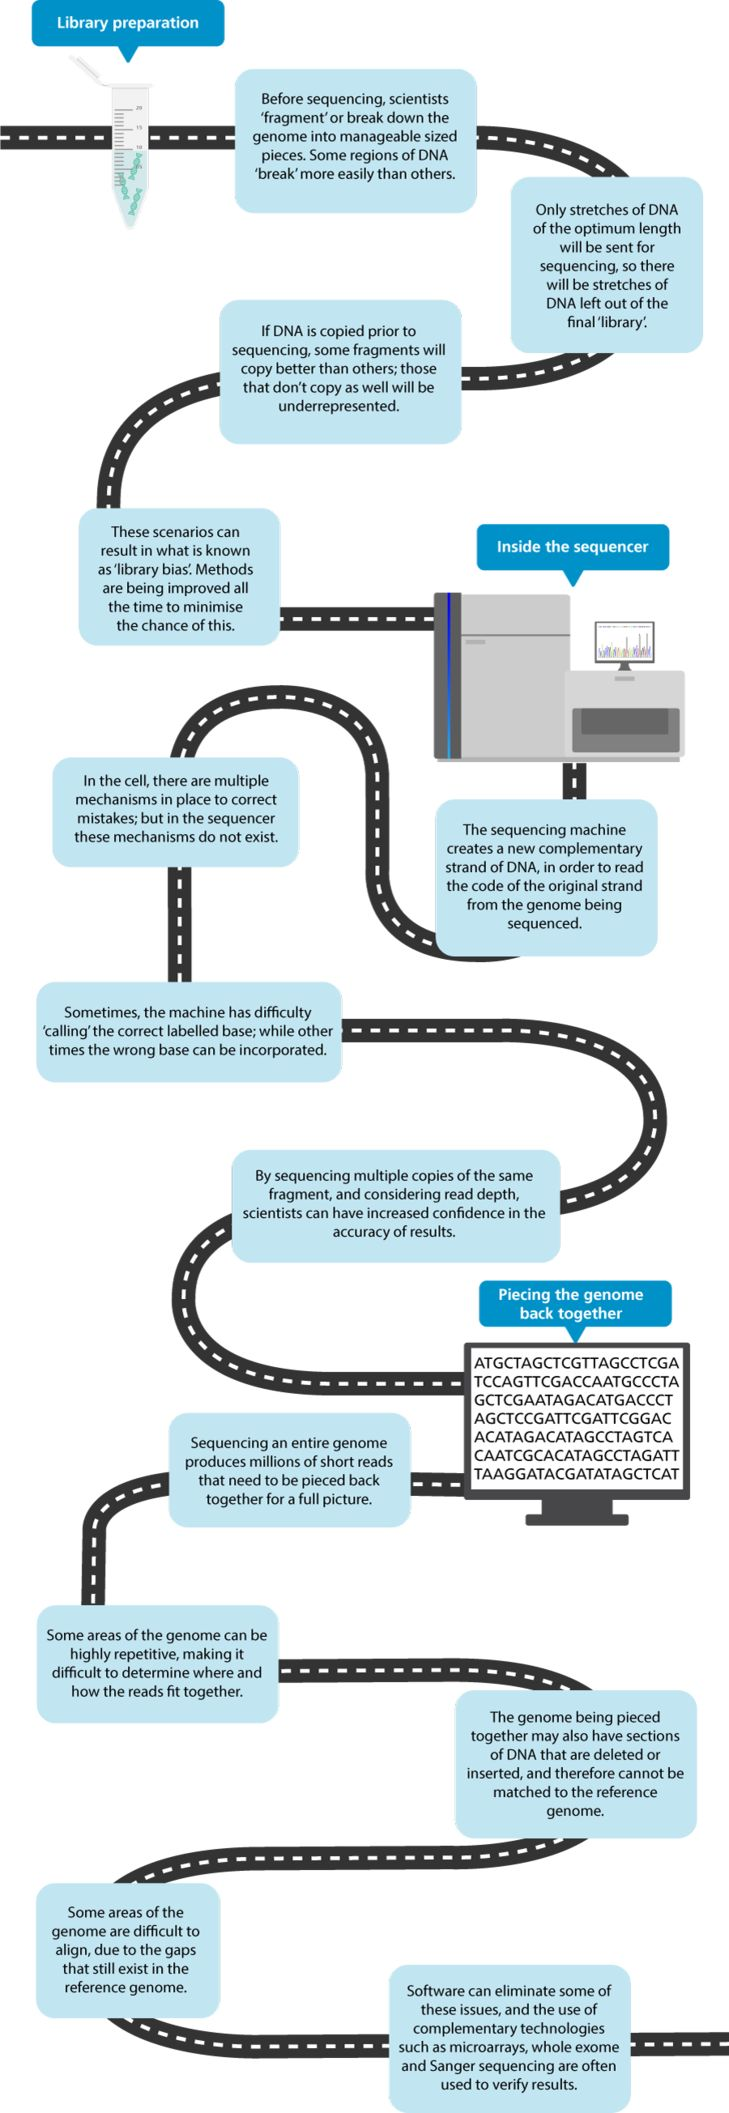 Infographic describing some of the limitations of the whole genome sequencing